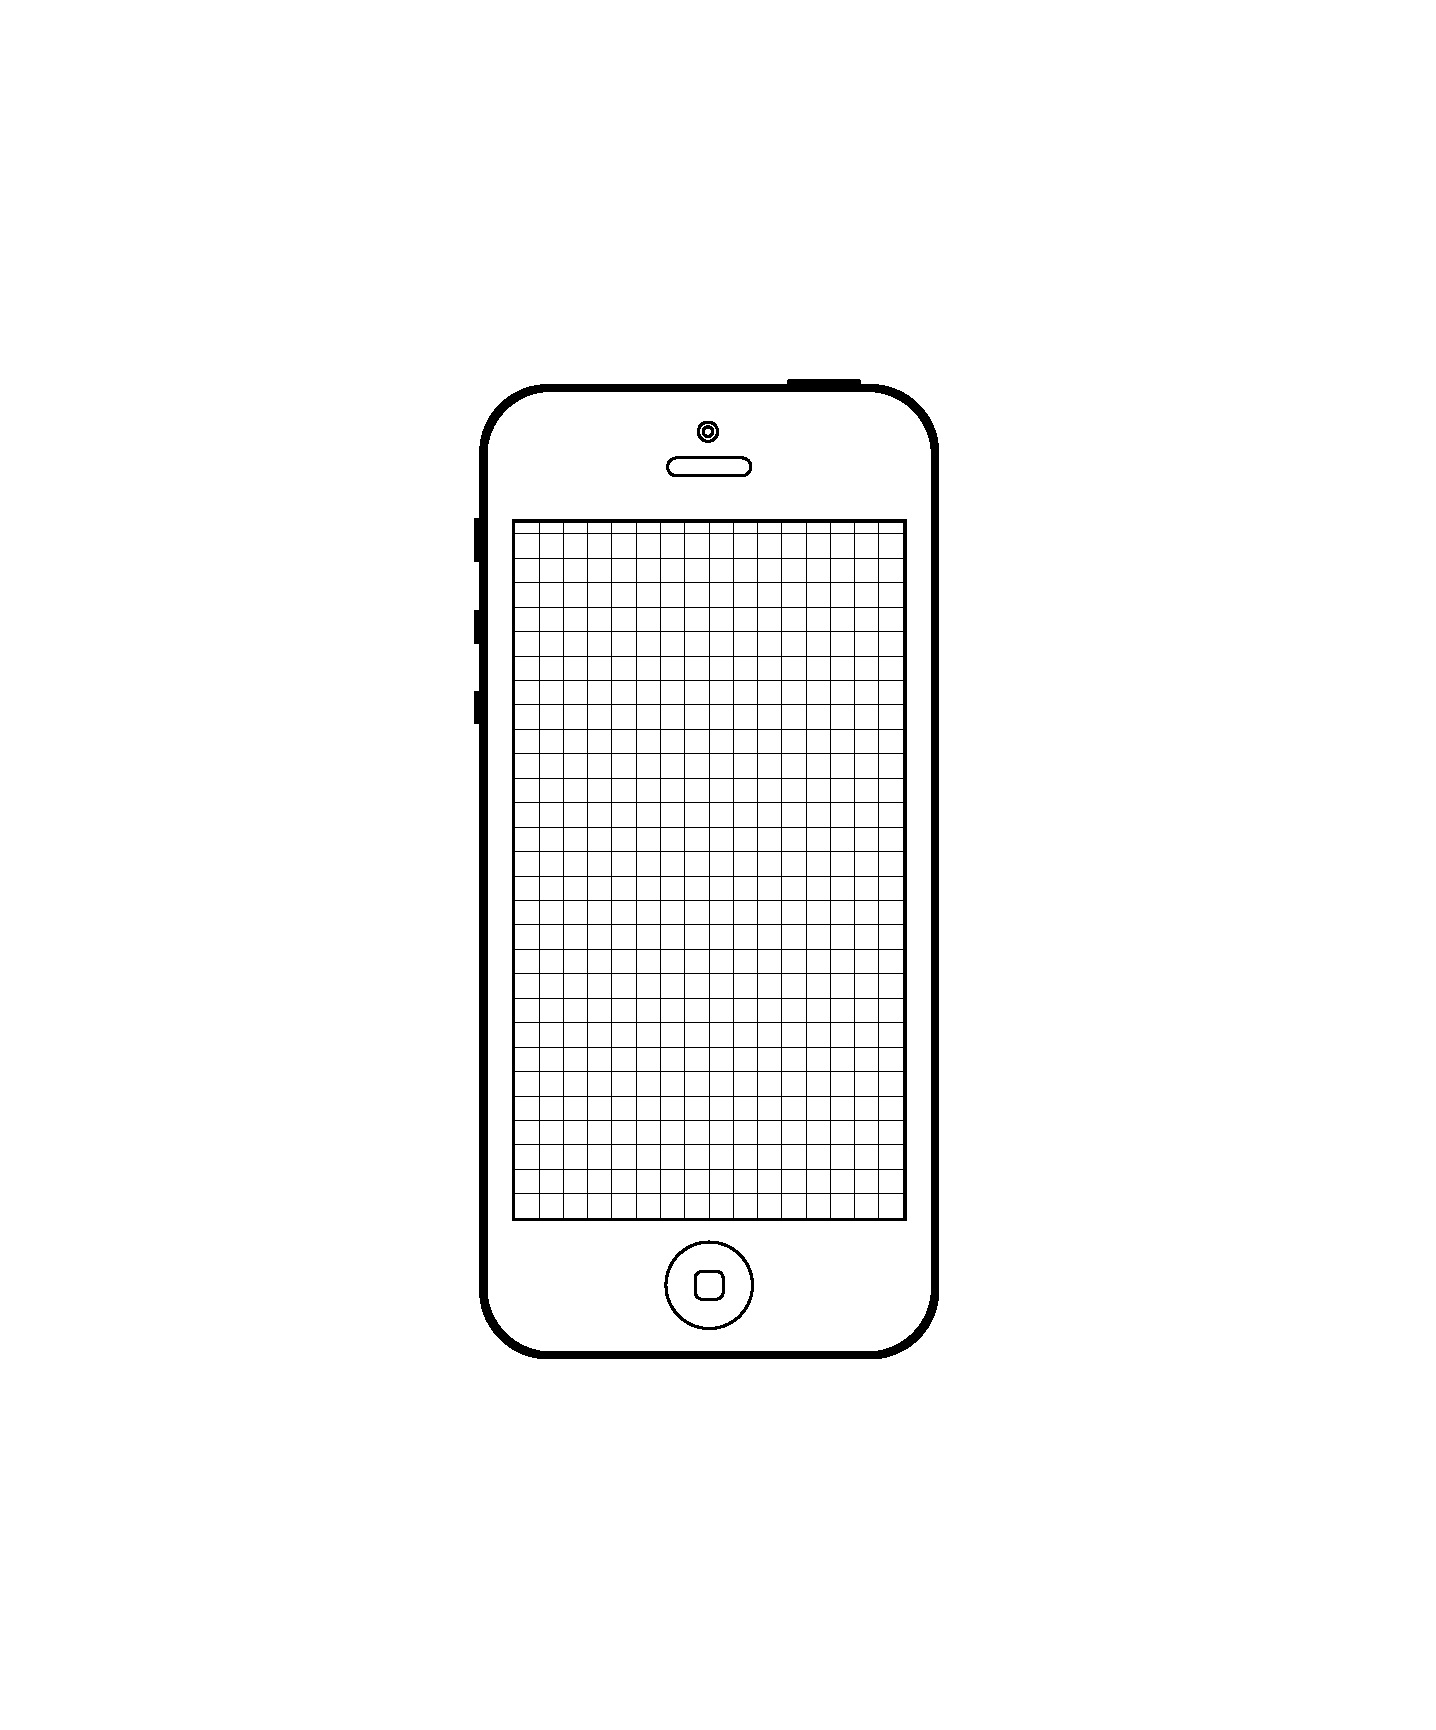 iPadpapers.com - iphone 5 template paper templates